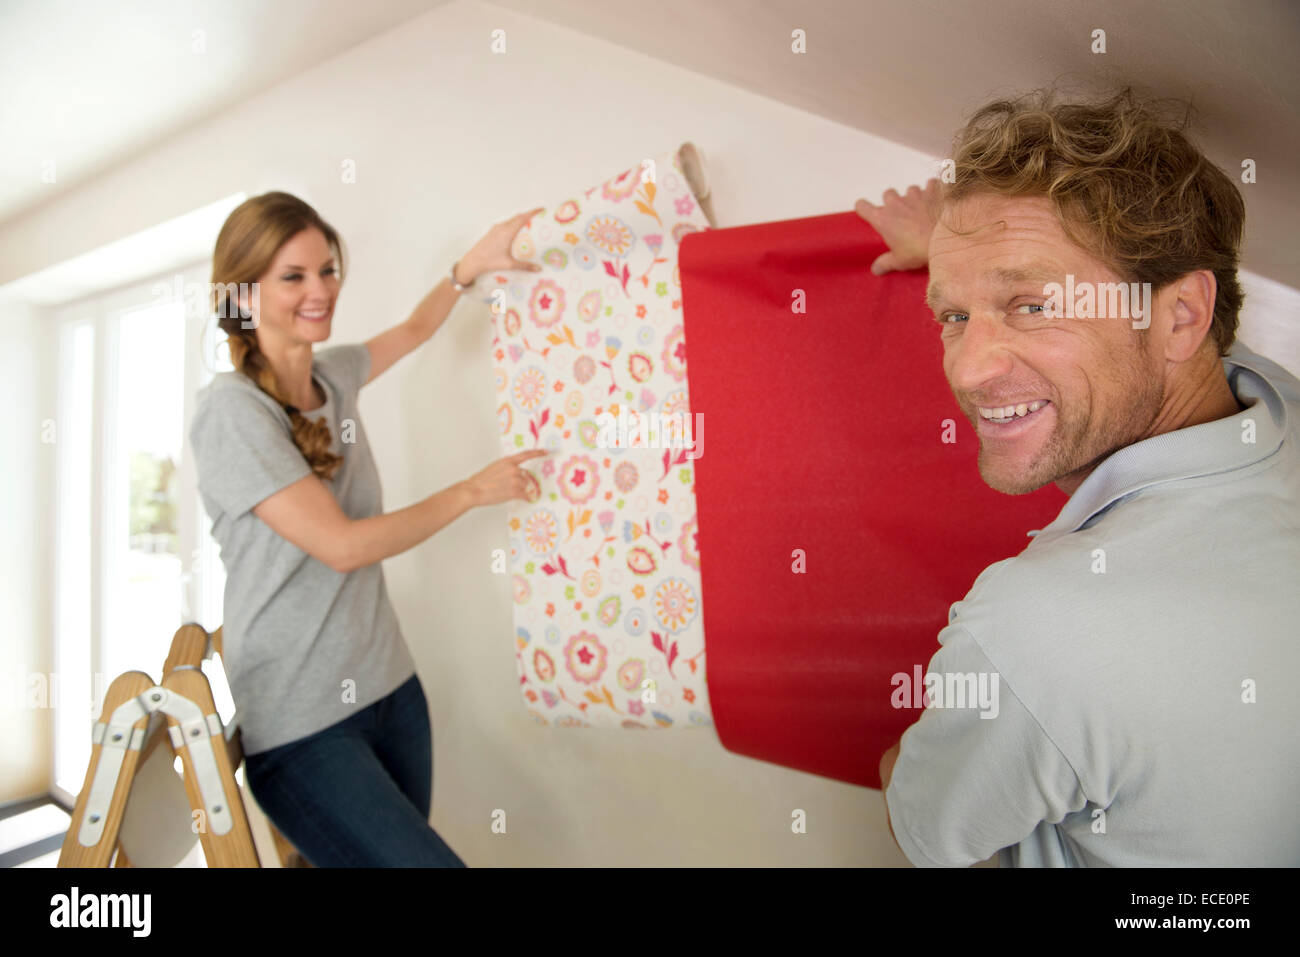 Married Couple Decorating New Home Wallpaper Stock Photo 76525302